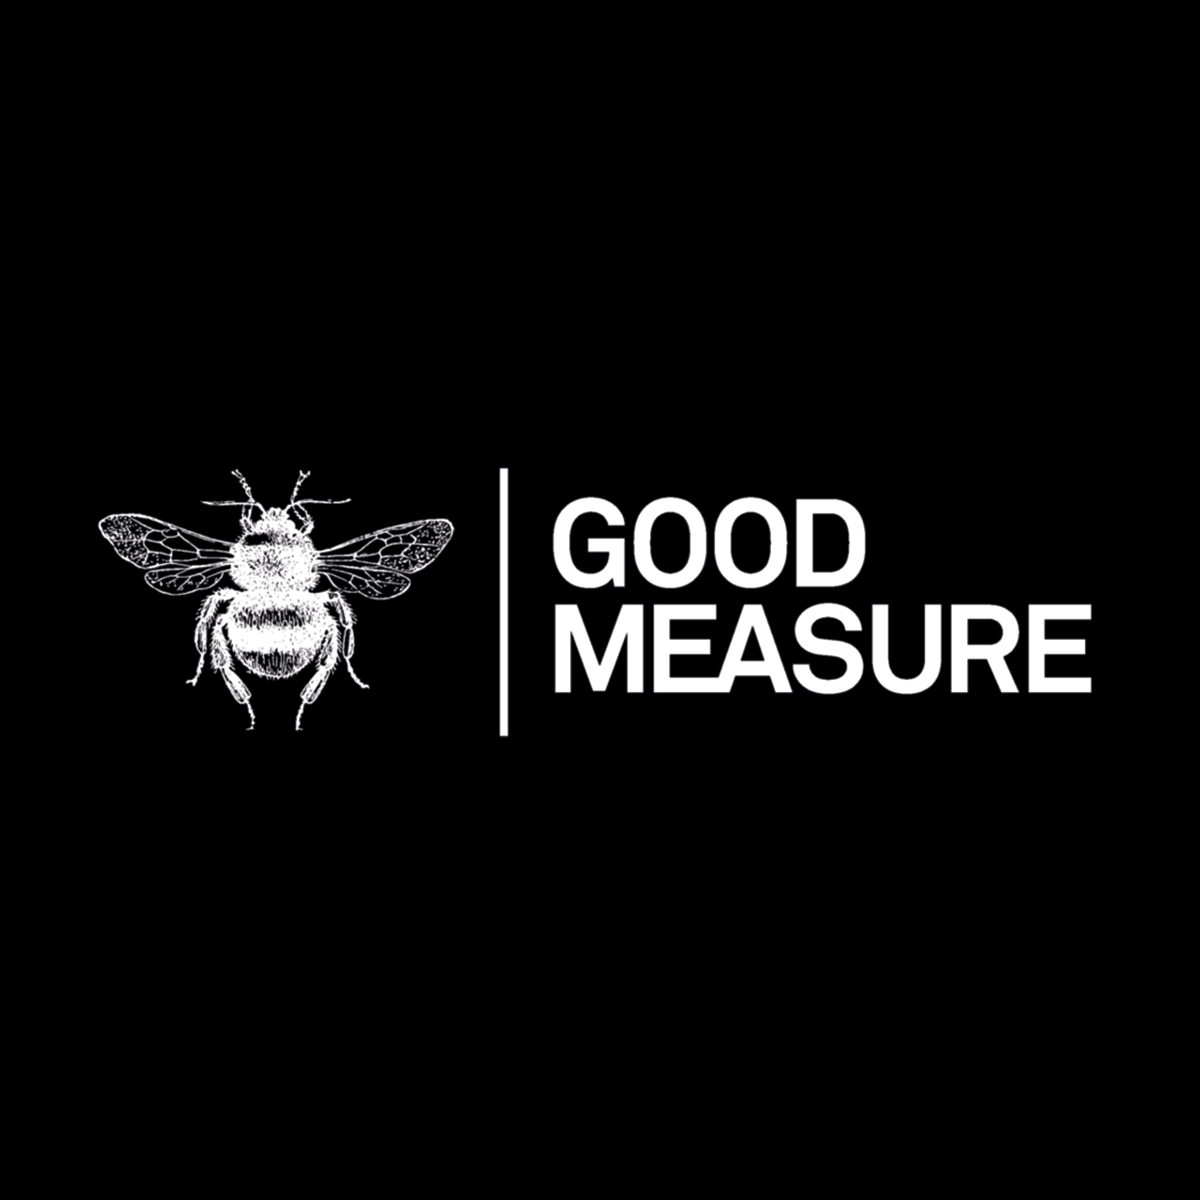 GOOD-MEASURE